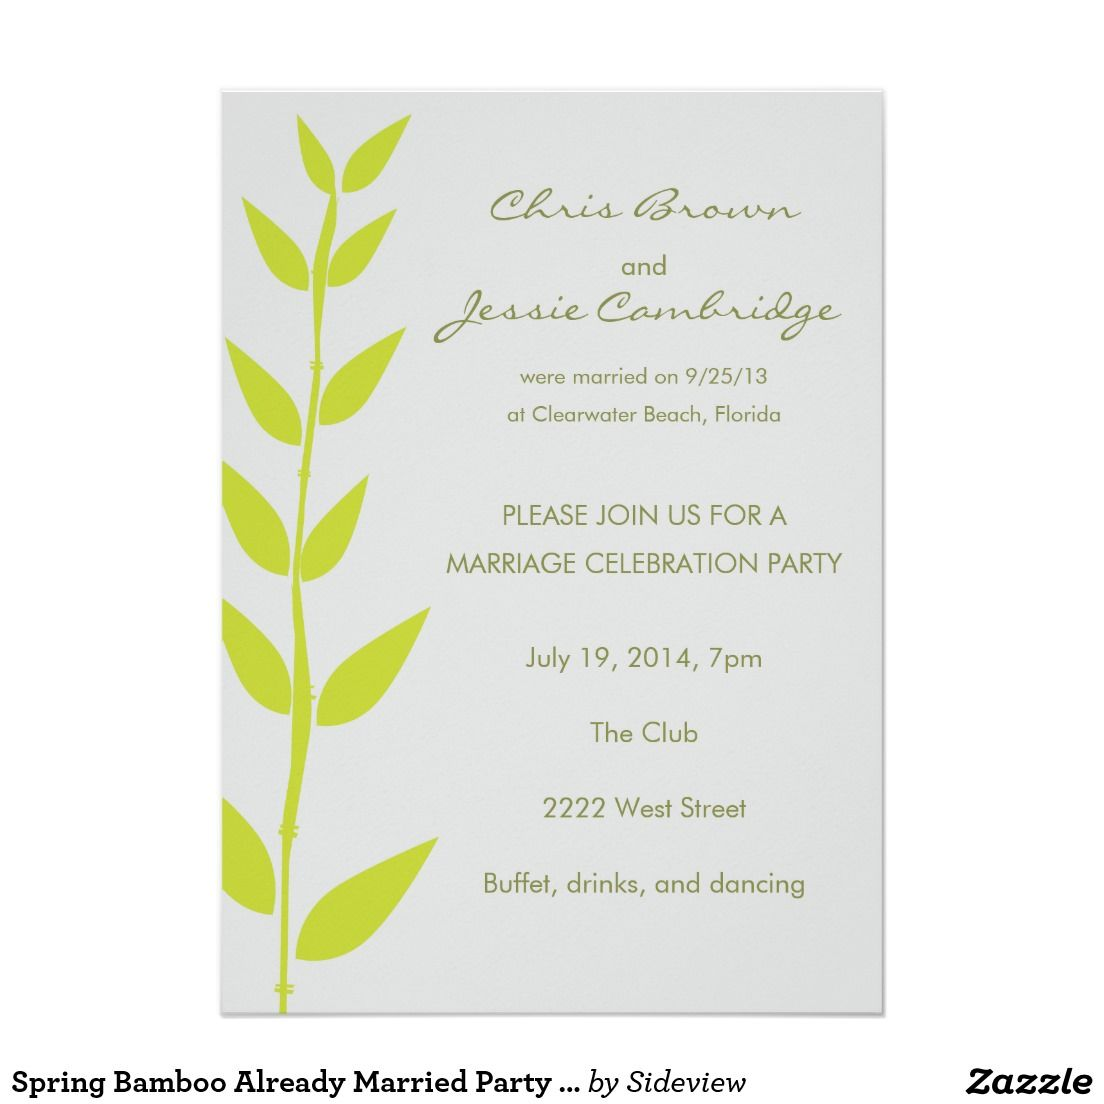 Wedding Invitation Wording Already Married Couple Google Search Spring Wedding Invitations Wedding Reception Invitations Reception Invitations